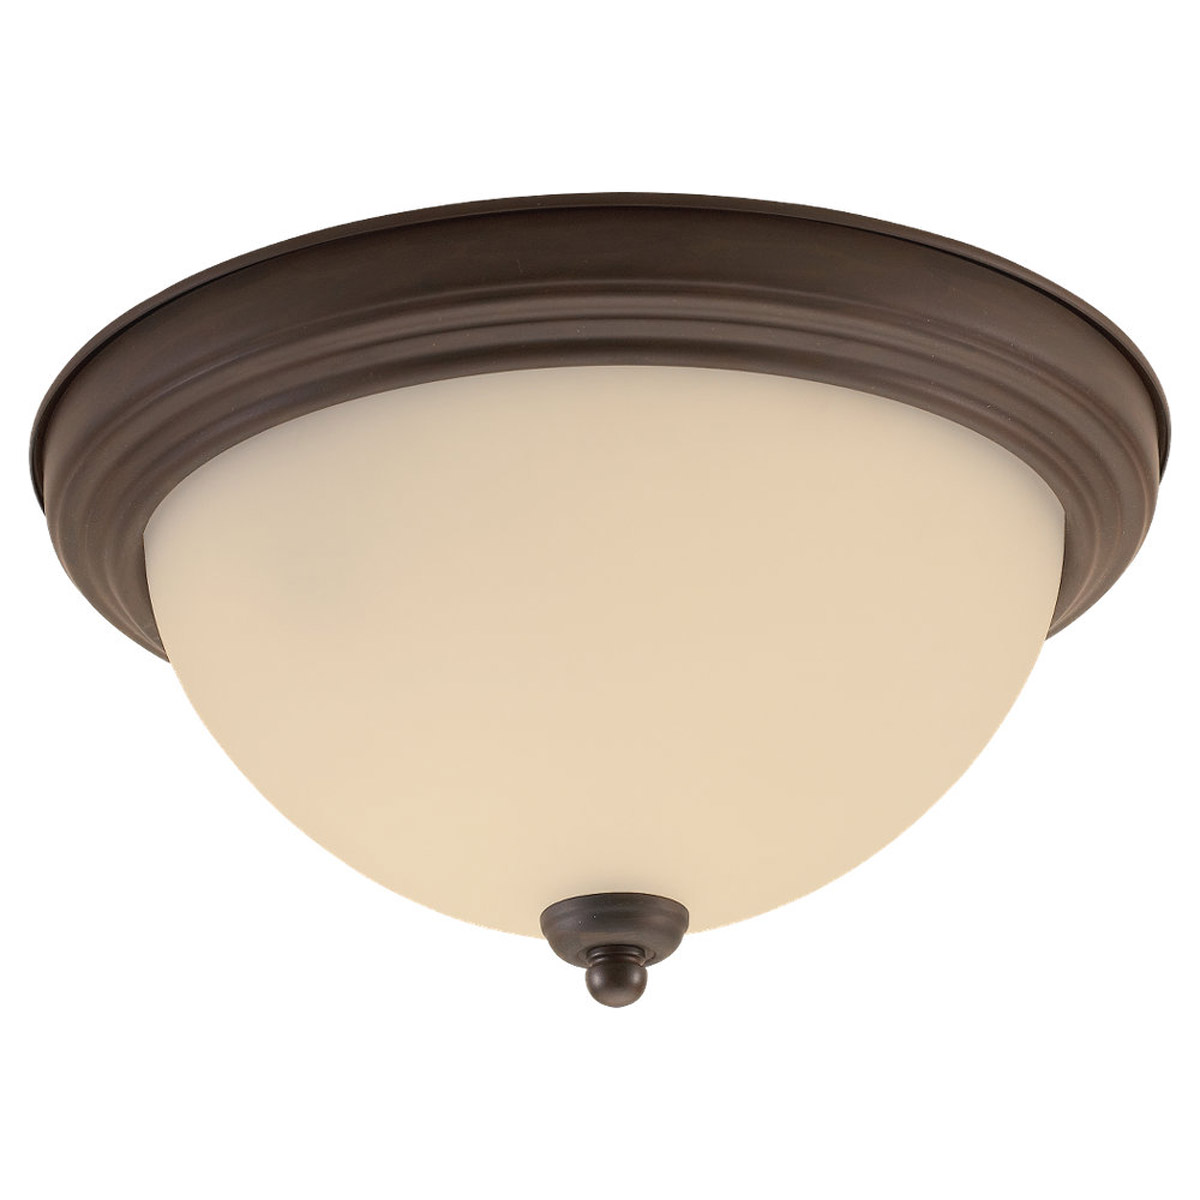 Sea Gull Lighting Signature 1 Light Flush Mount in Olde Iron 77063-72 photo